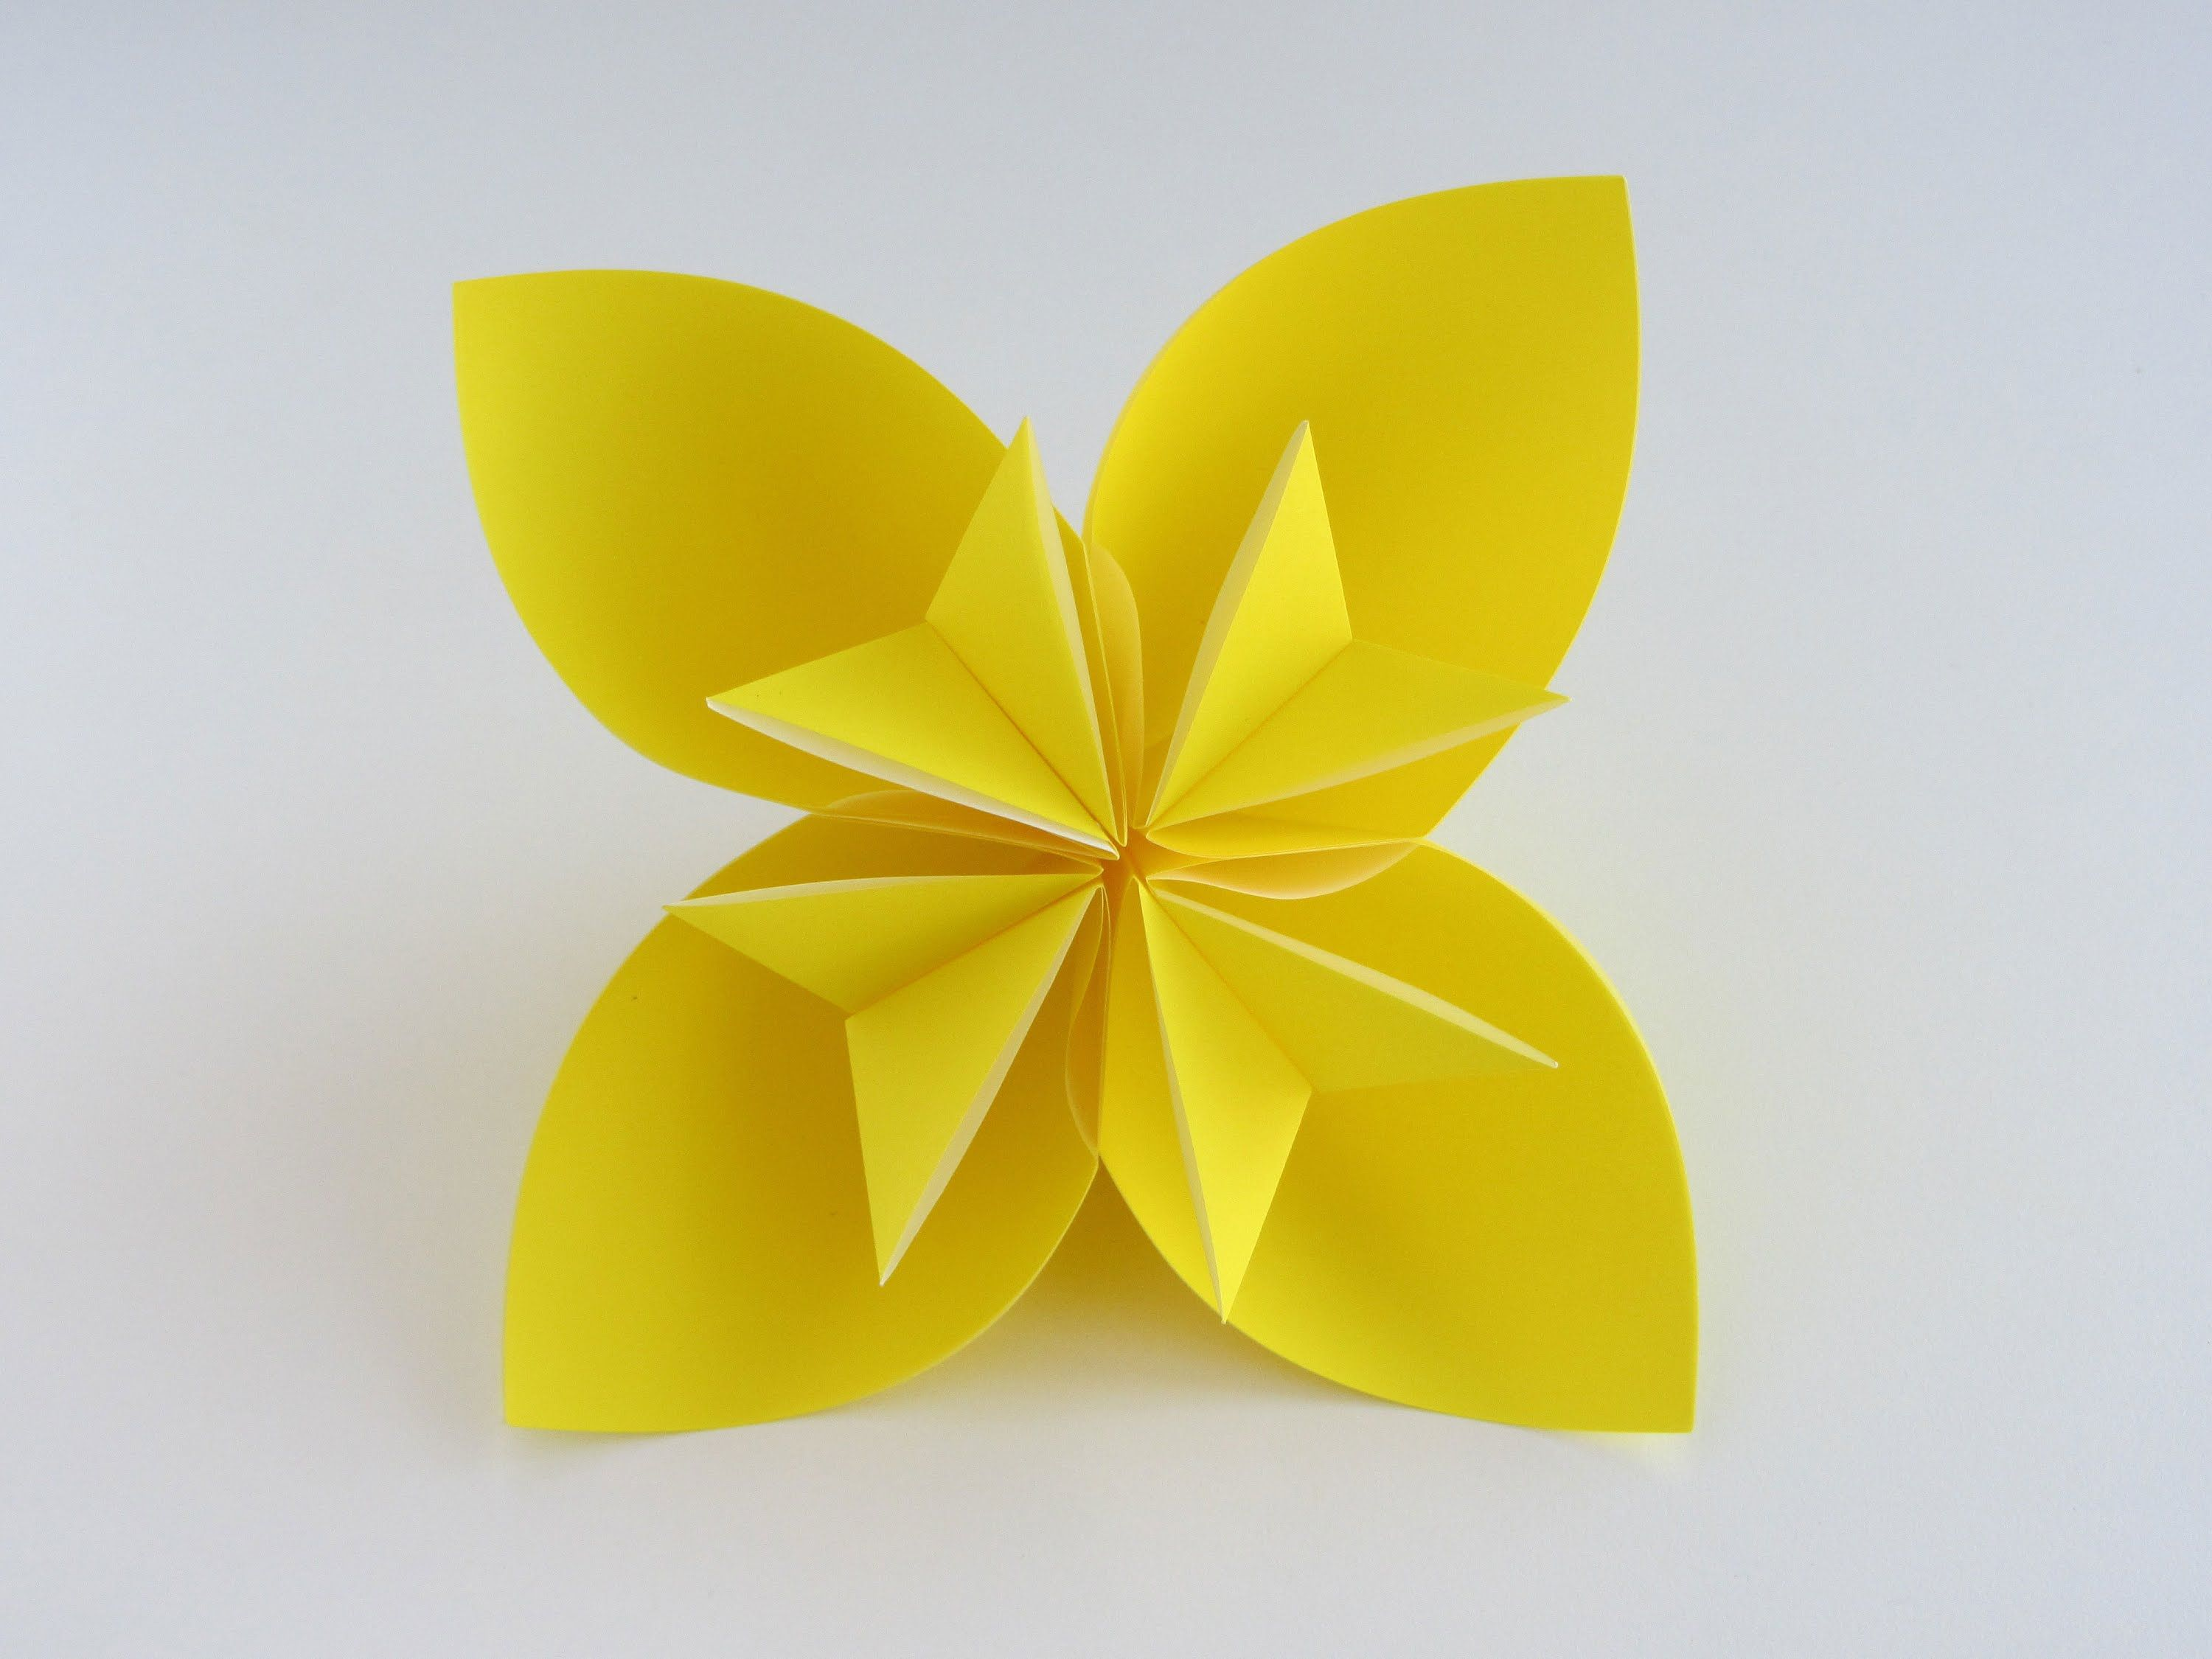 star flower origami diagram jaguar x type 2 0 diesel engine how to make the easy kusudama step by instructions see our website for more www com